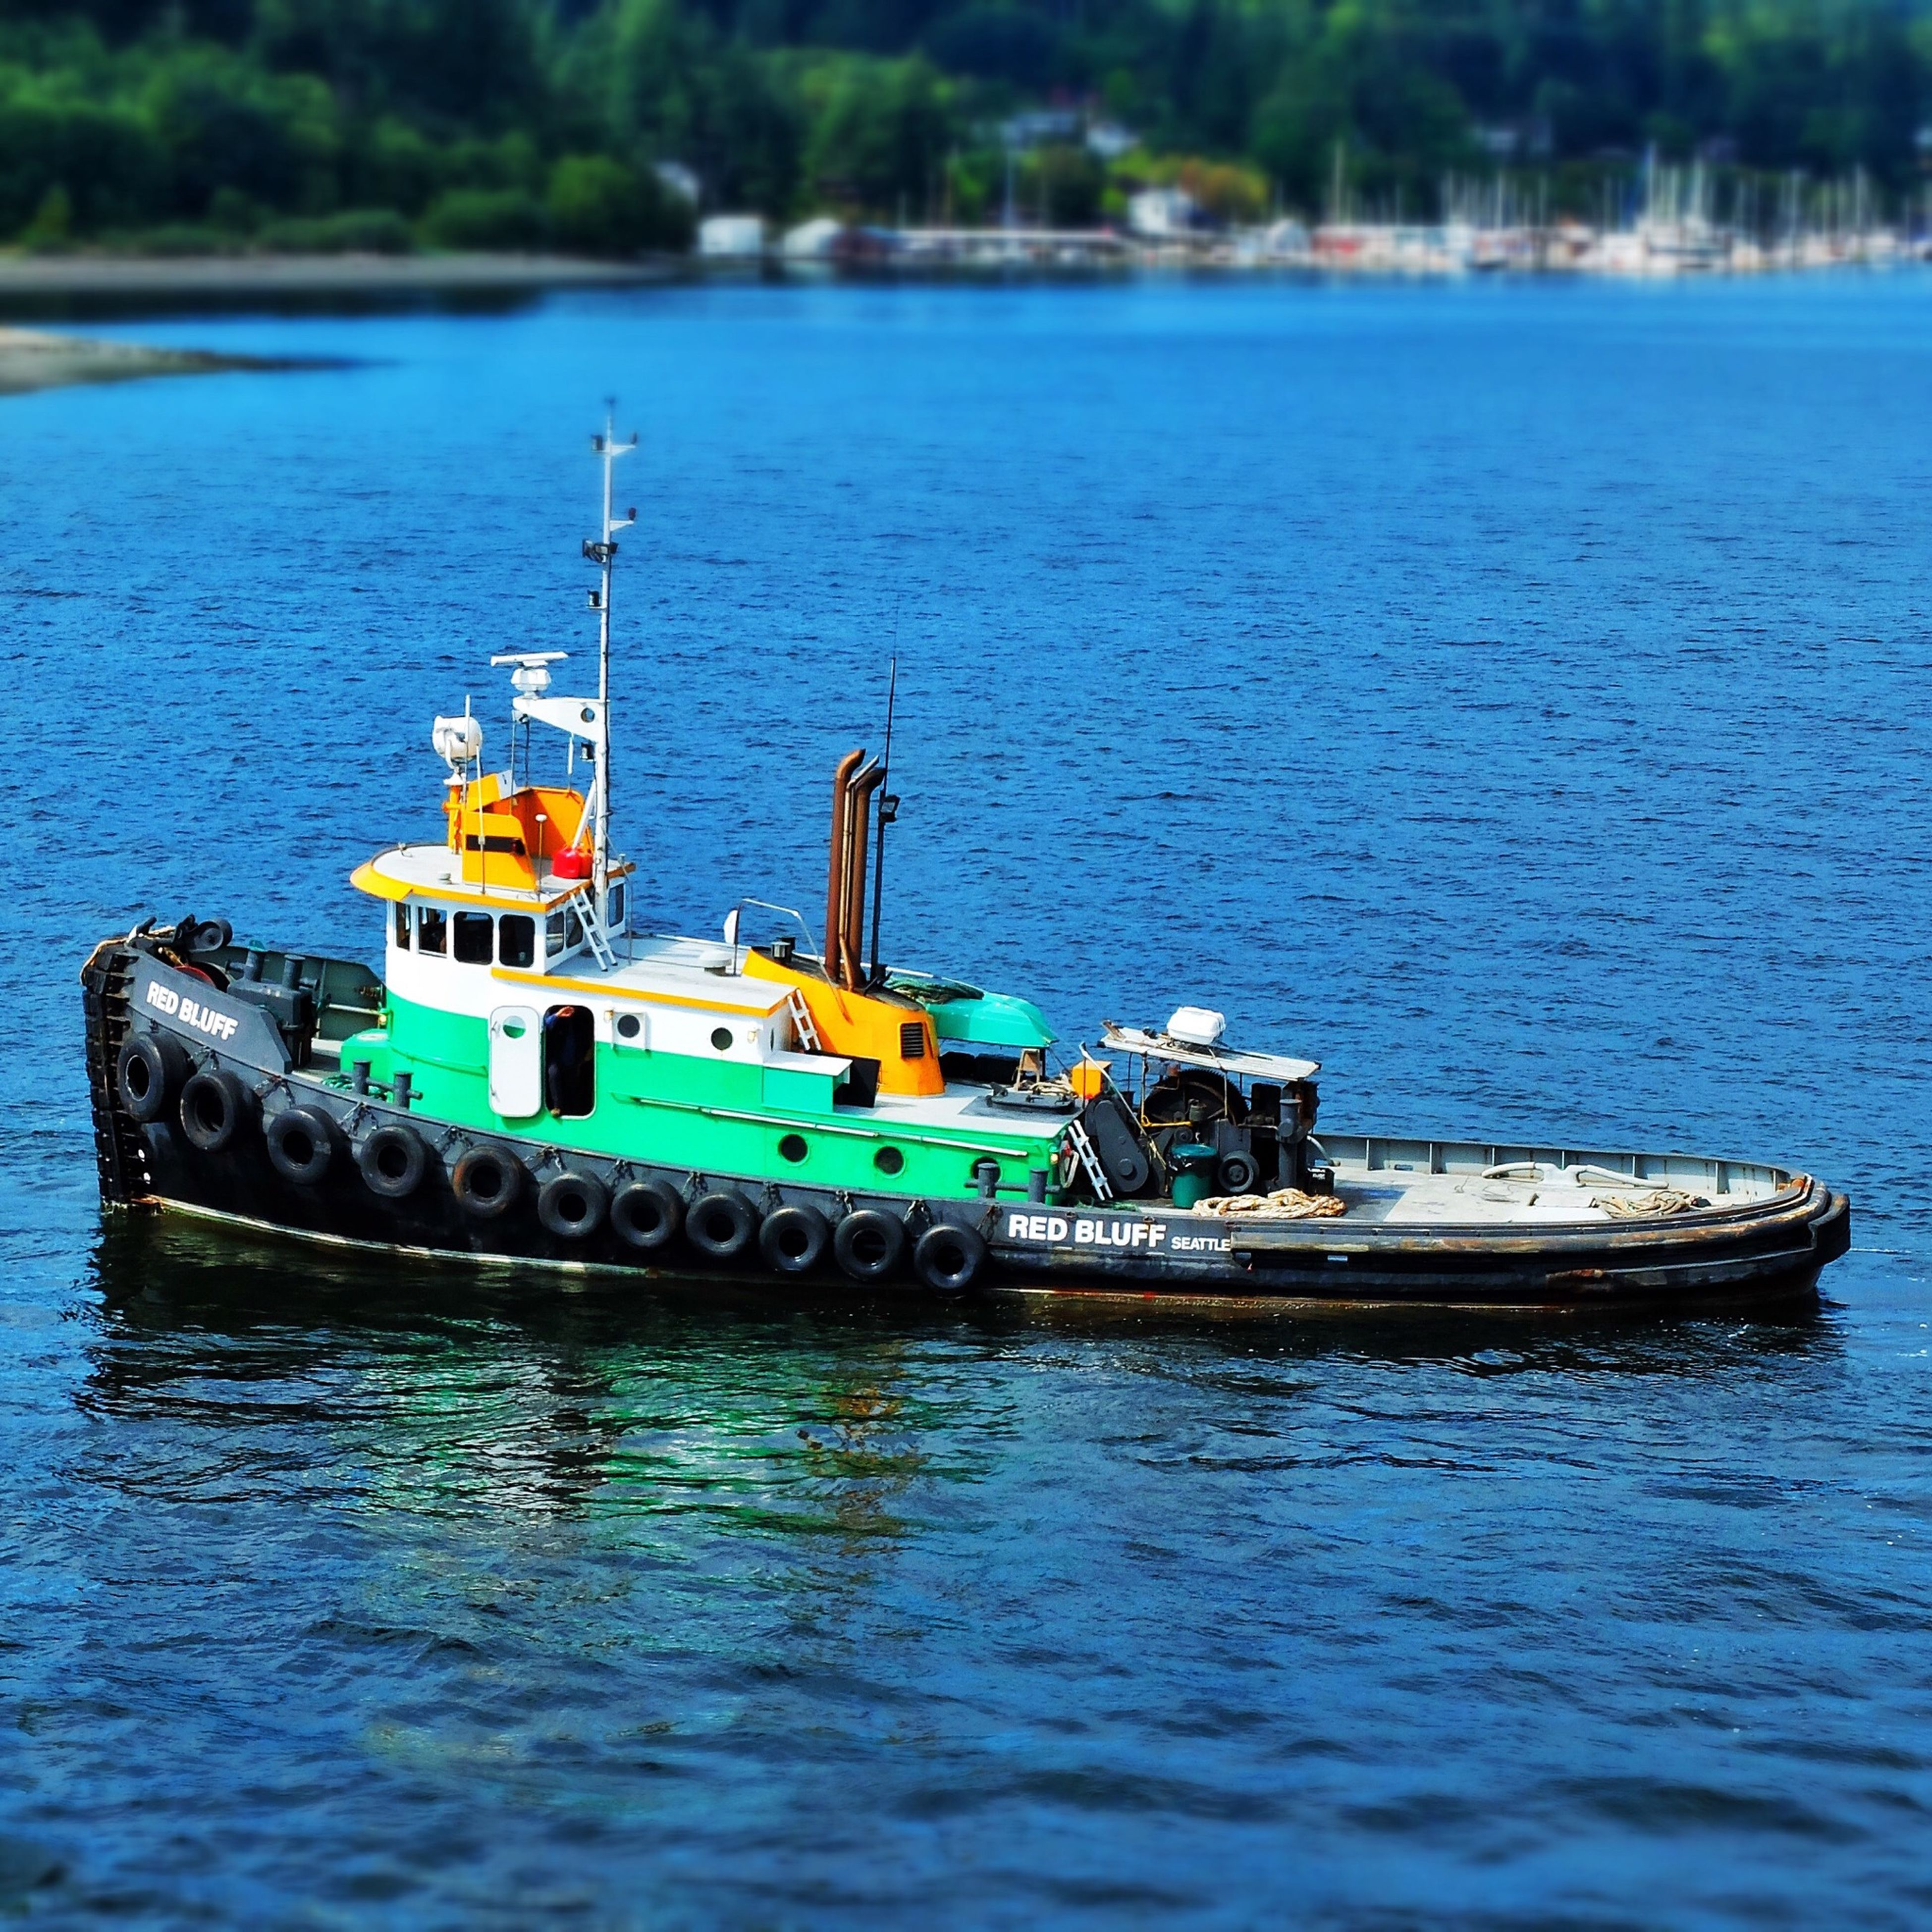 nautical vessel, water, transportation, mode of transport, boat, moored, waterfront, blue, sea, rippled, travel, sailing, nature, day, tranquility, lake, river, tranquil scene, outdoors, motorboat